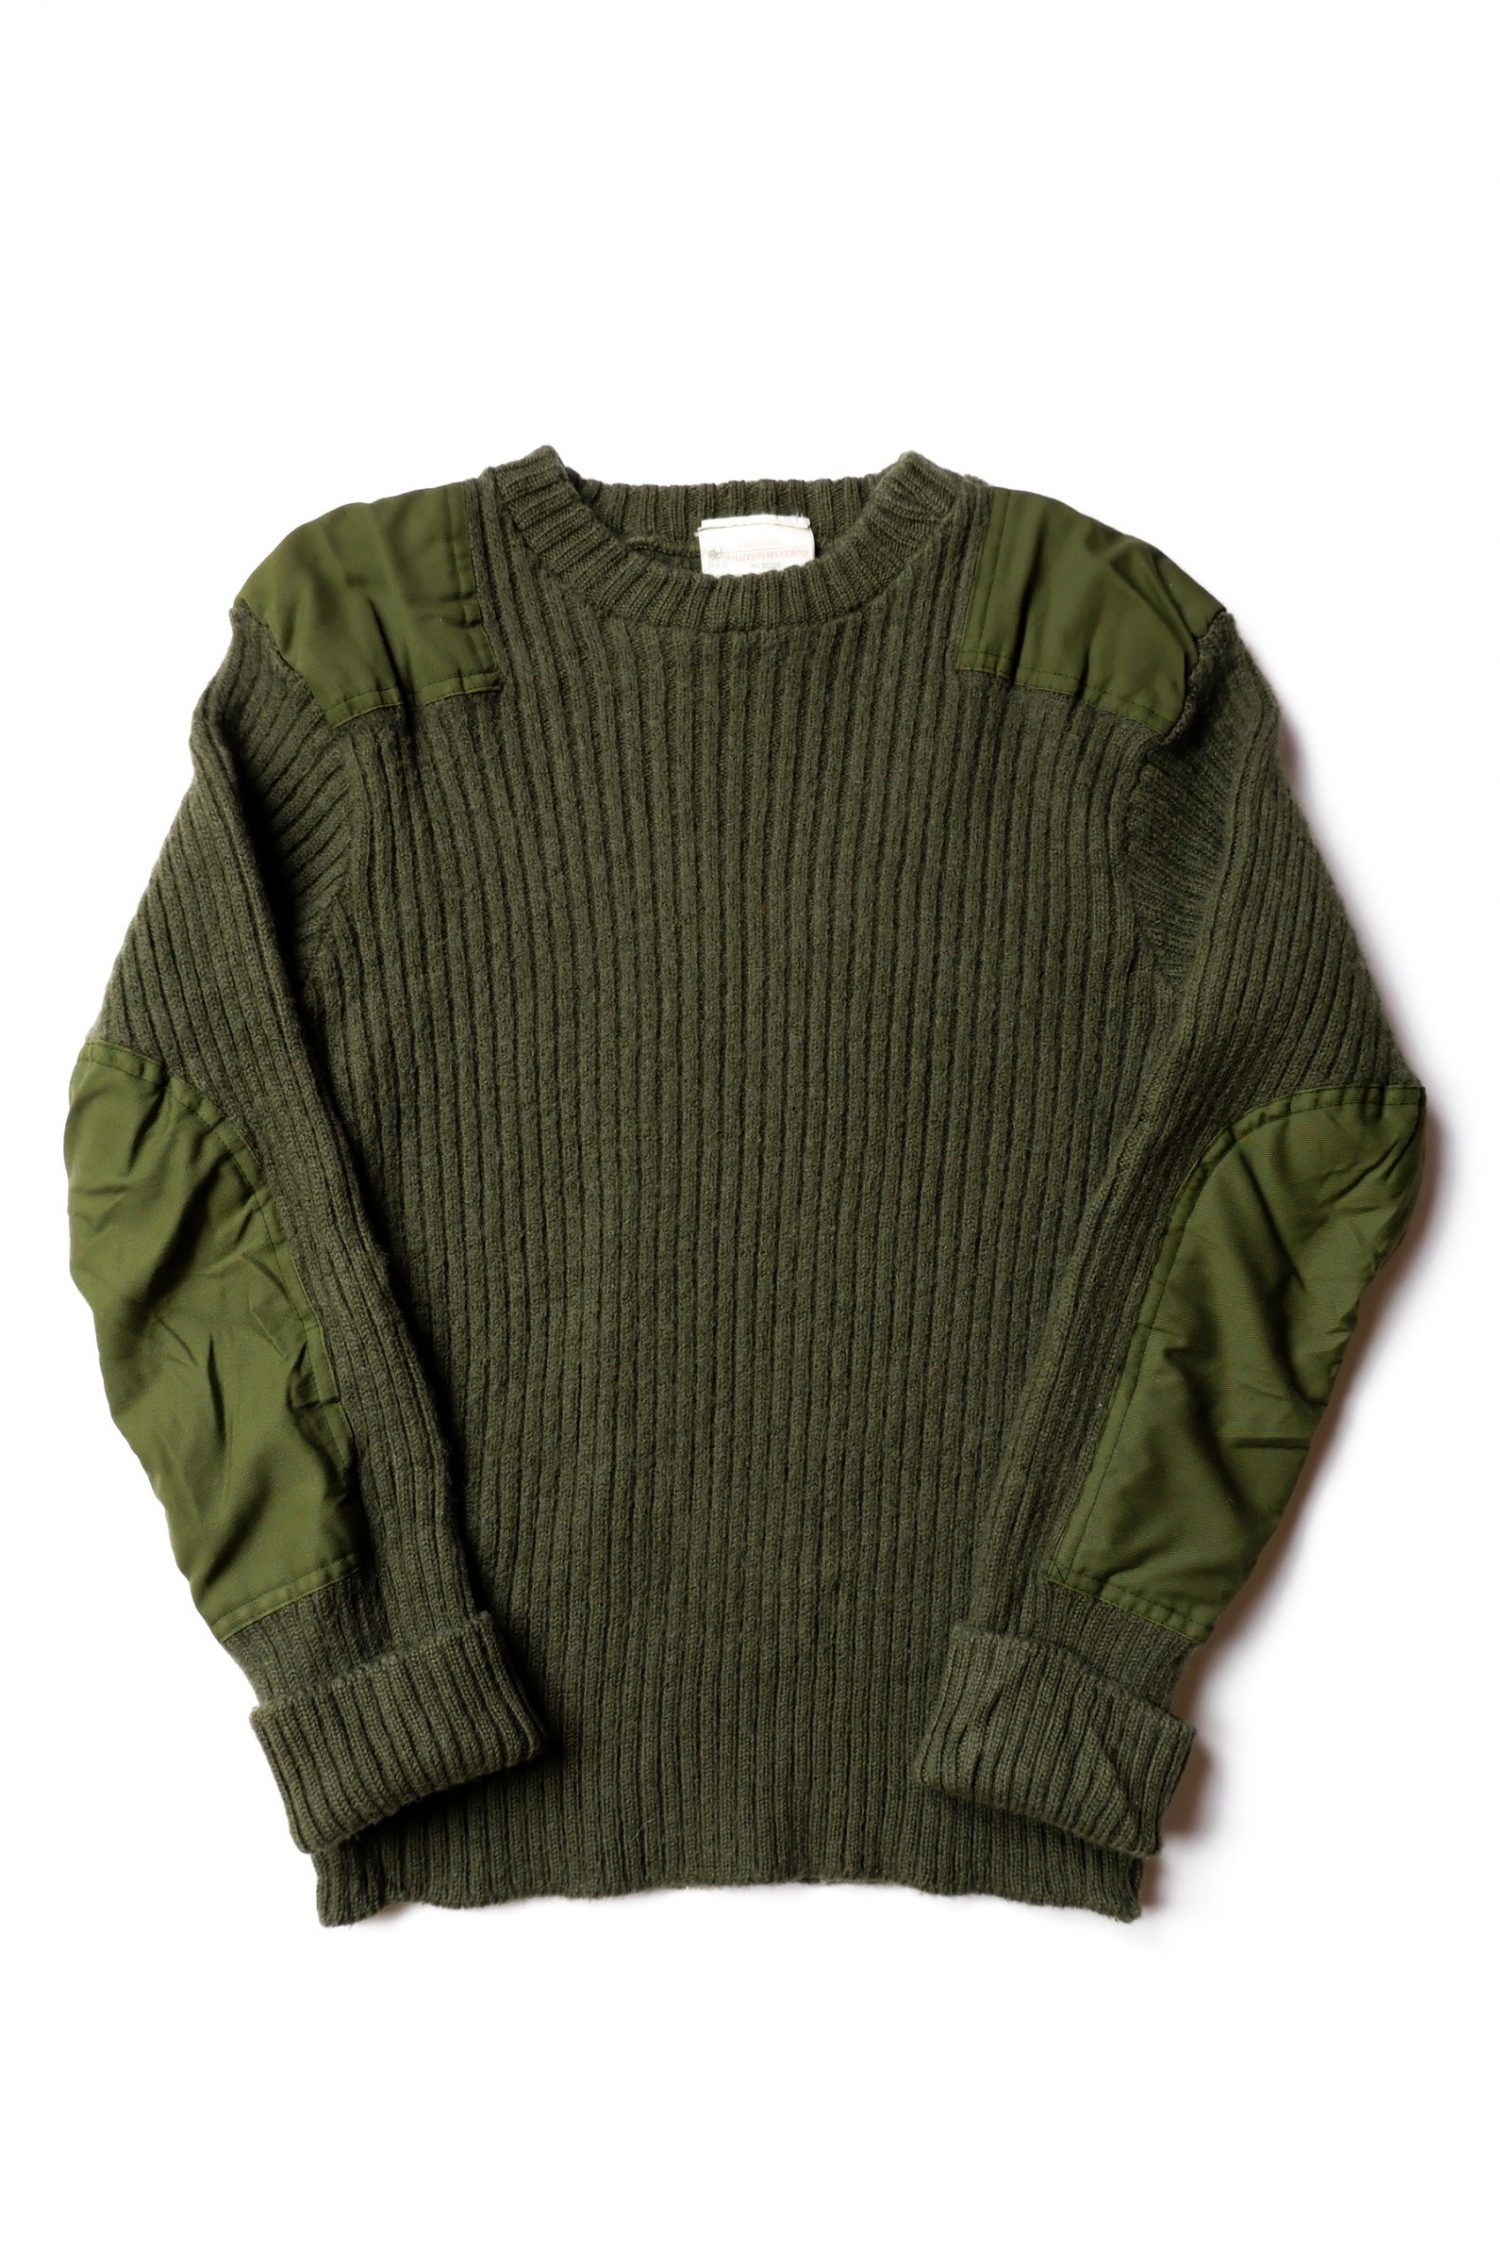 U.K Military Knited Sweater_B